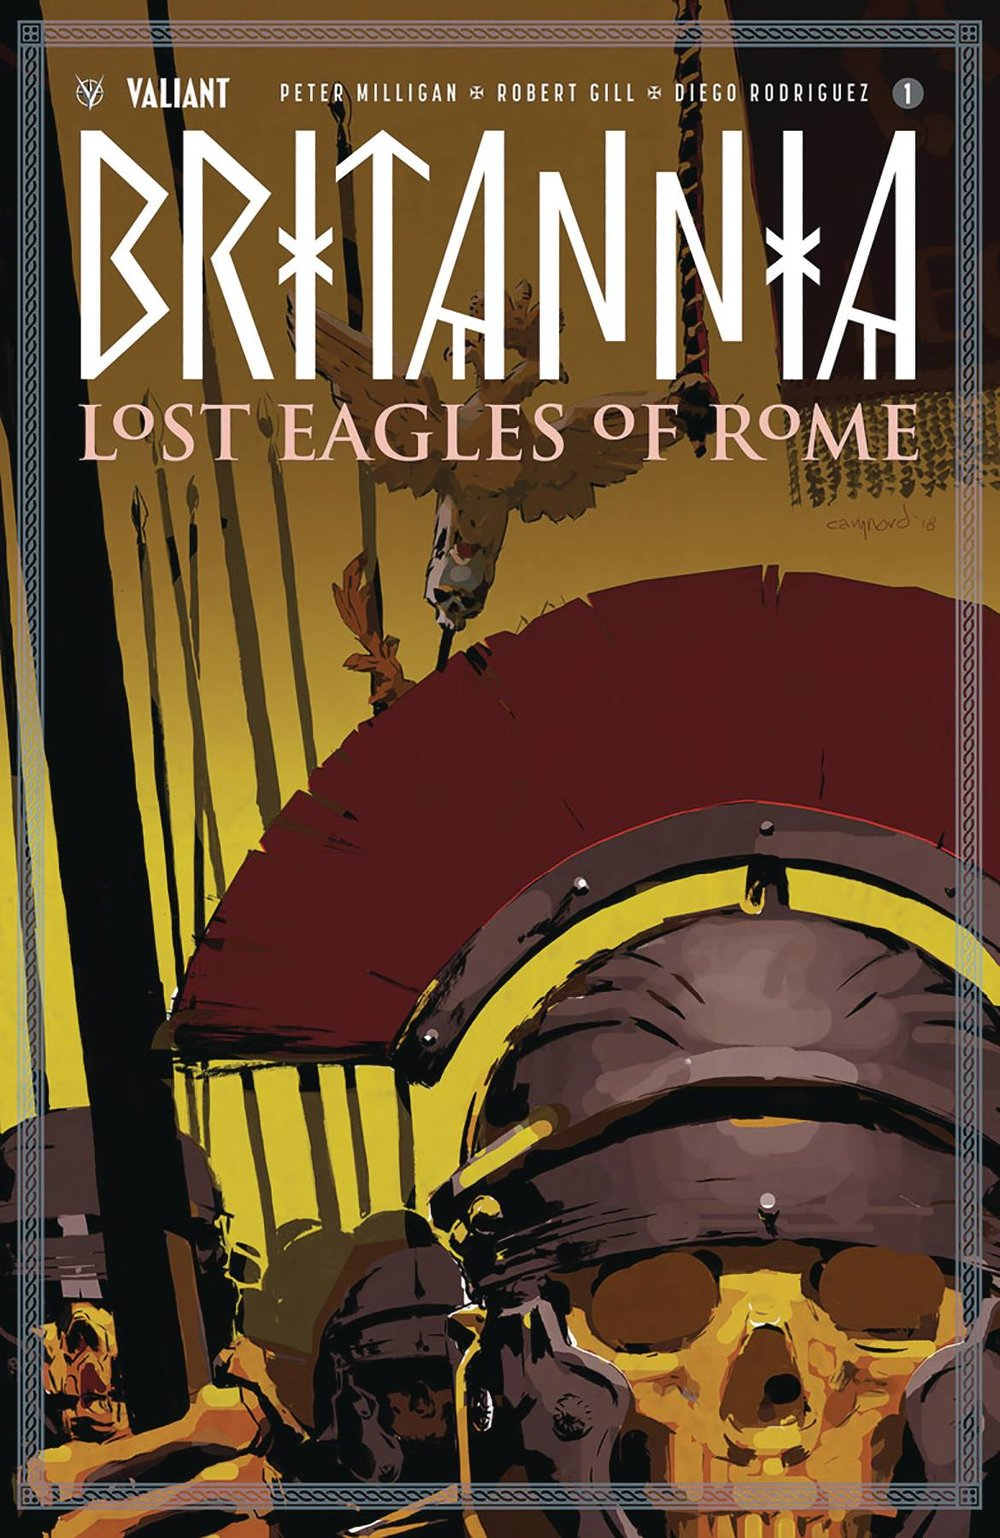 "VALIANT ENTERTAINMENT LLC  (W) Peter Milligan (A) Robert Gill (CA) Cary Nord  AN ALL-NEW EPIC BEGINS! Valiant's sold-out descent into the horrors of the ancient world returns with A BLOODSTAINED JUMPING-ON POINT from legendary comics master Peter Milligan (Detective Comics) and Harvey Award-nominated artist Robert Gill (BOOK OF DEATH) as Antonius Axia, history's first detective, launches into an otherworldly mystery of monsters, magic, and conspiracy at the boundaries of human understanding...     The Roman standard - the eagle borne at the front of each Roman legion - was more than just a symbol of the soldiers that carried it... It was a symbol of Rome itself, the ultimate embodiment of the empire's power...      But now, in the mist-shrouded Germanic forest of Tottenwald, the unthinkable has happened: A rampaging barbarian horde has crushed three of Rome's most highly skilled detachments in battle... and captured their mighty Roman eagles.     His authority threatened by this all-too-public shame, the mad emperor Nero has dispatched Antonius Axia, the empire's finest ""detectioner"" and hero of Britannia, and Achillia, the sword-wielding champion of the gladiatorial arena, to reclaim his stolen relics at any cost.      But what began as a simple mission will soon become a terrifying journey into the dark heart of belief itself as the isolated woodlands of Rome's enemies reveal unseen dimensions...and the true power of the legion's lost eagles threatens to consume any who would pursue them…"